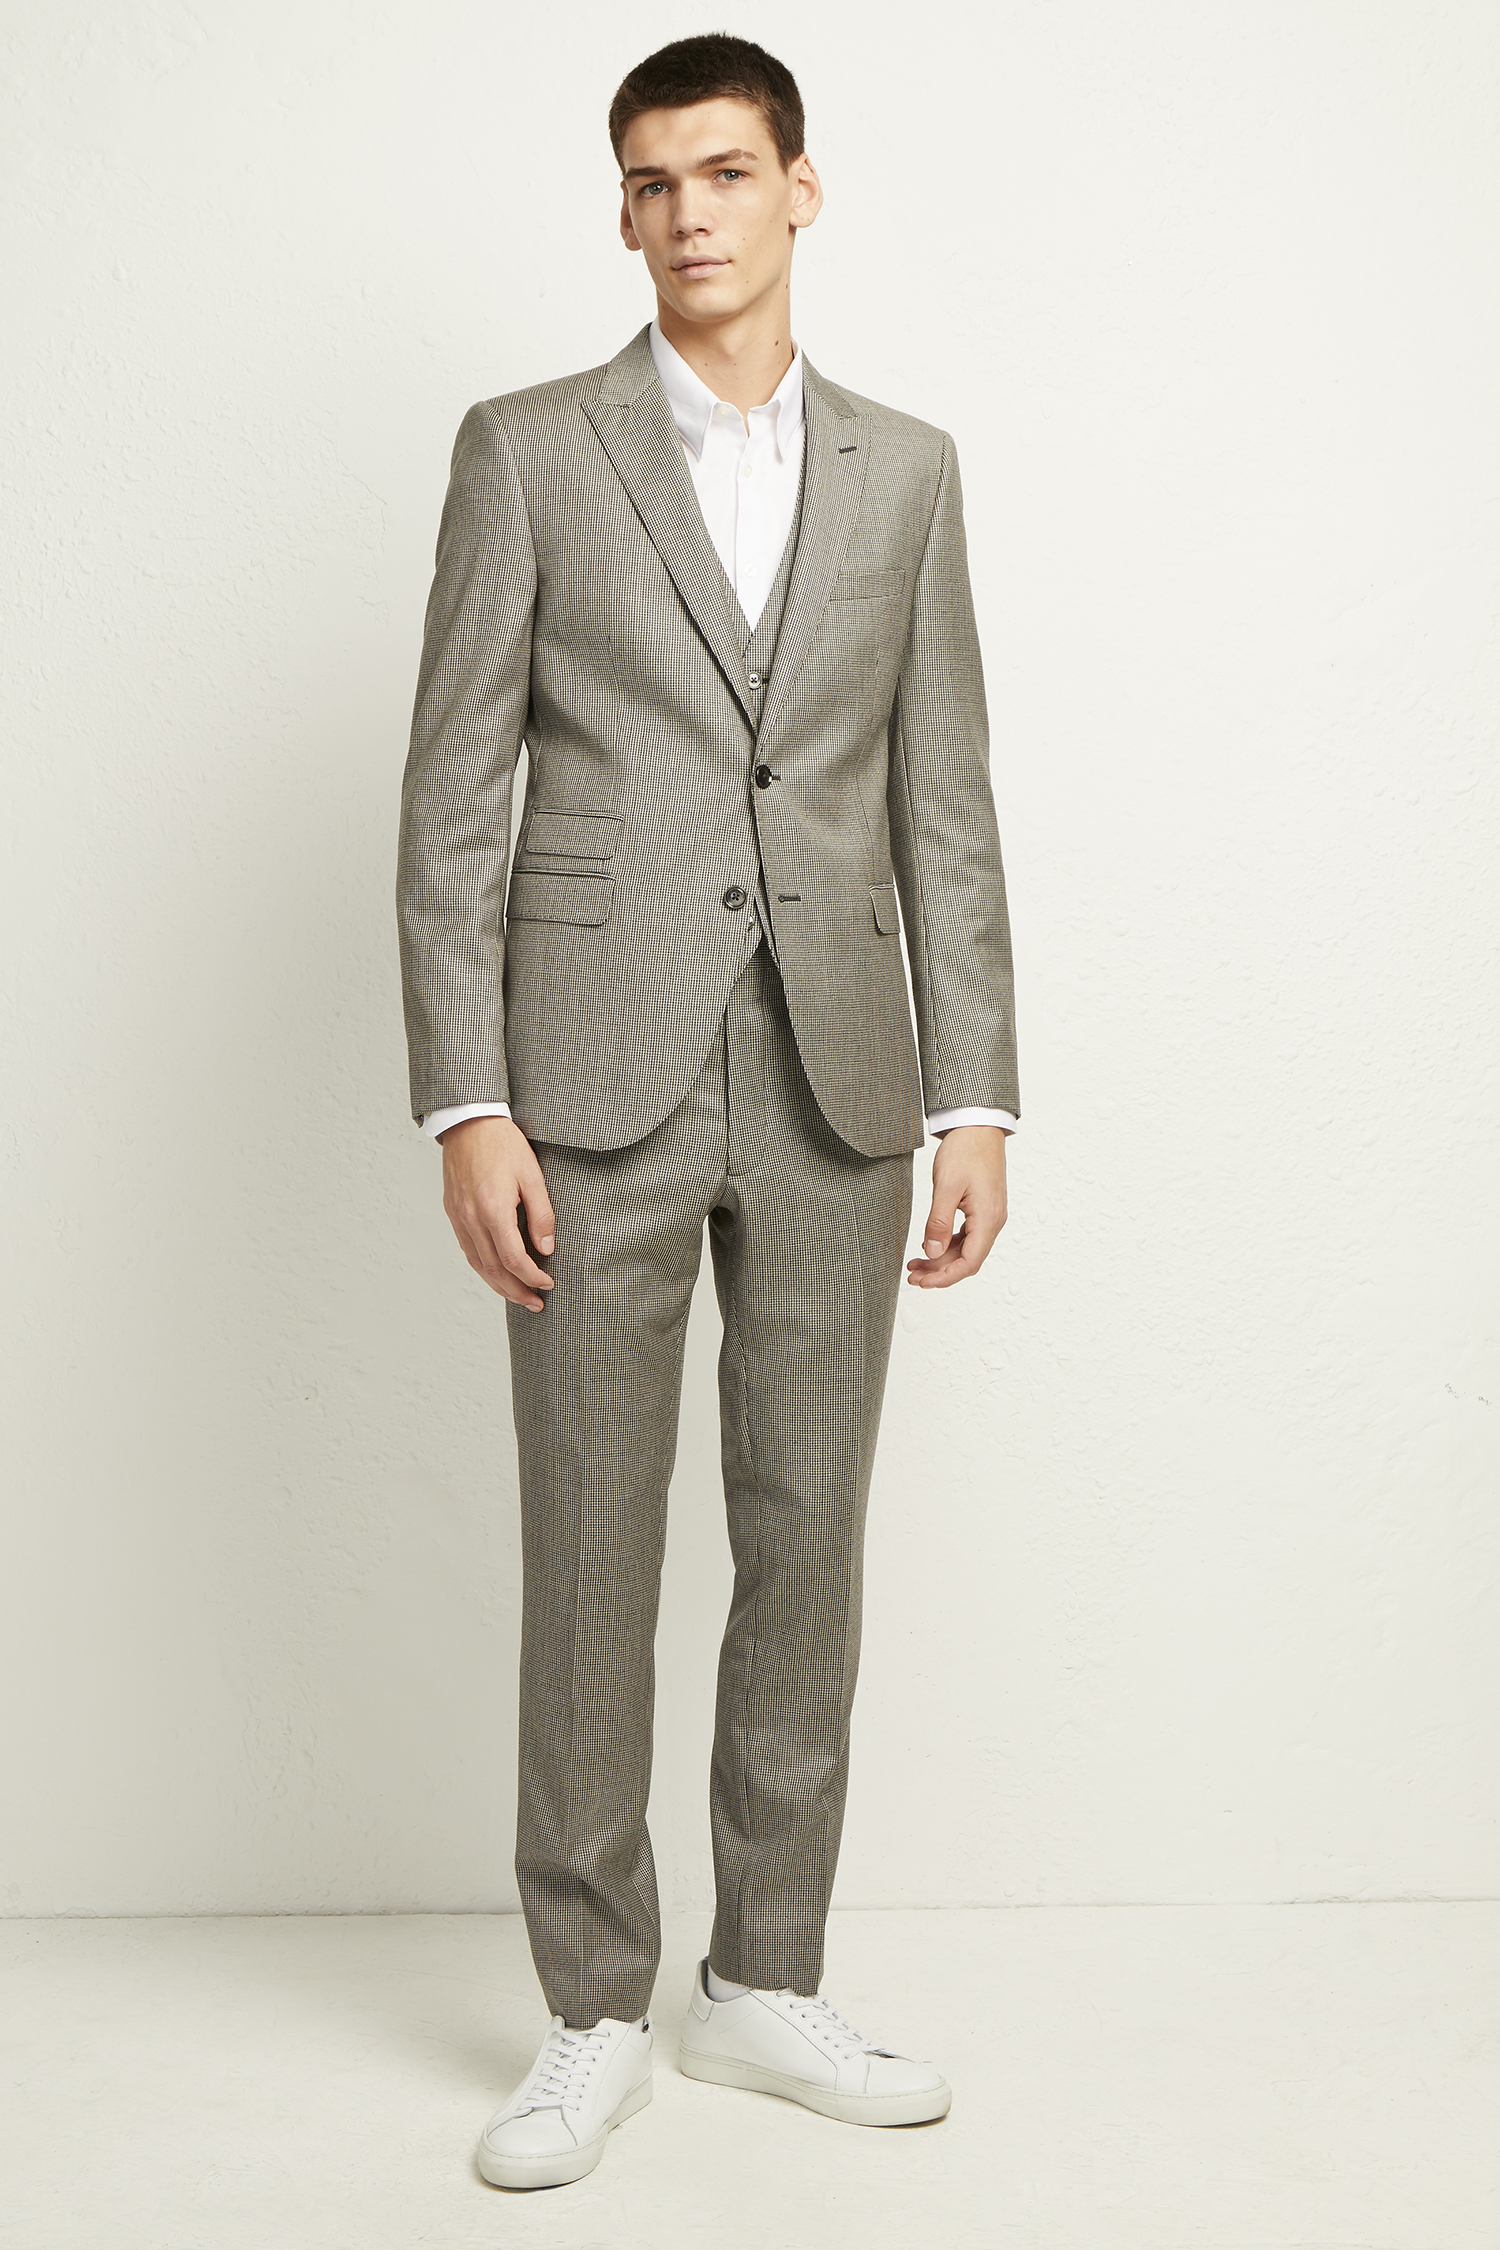 men's winter suits